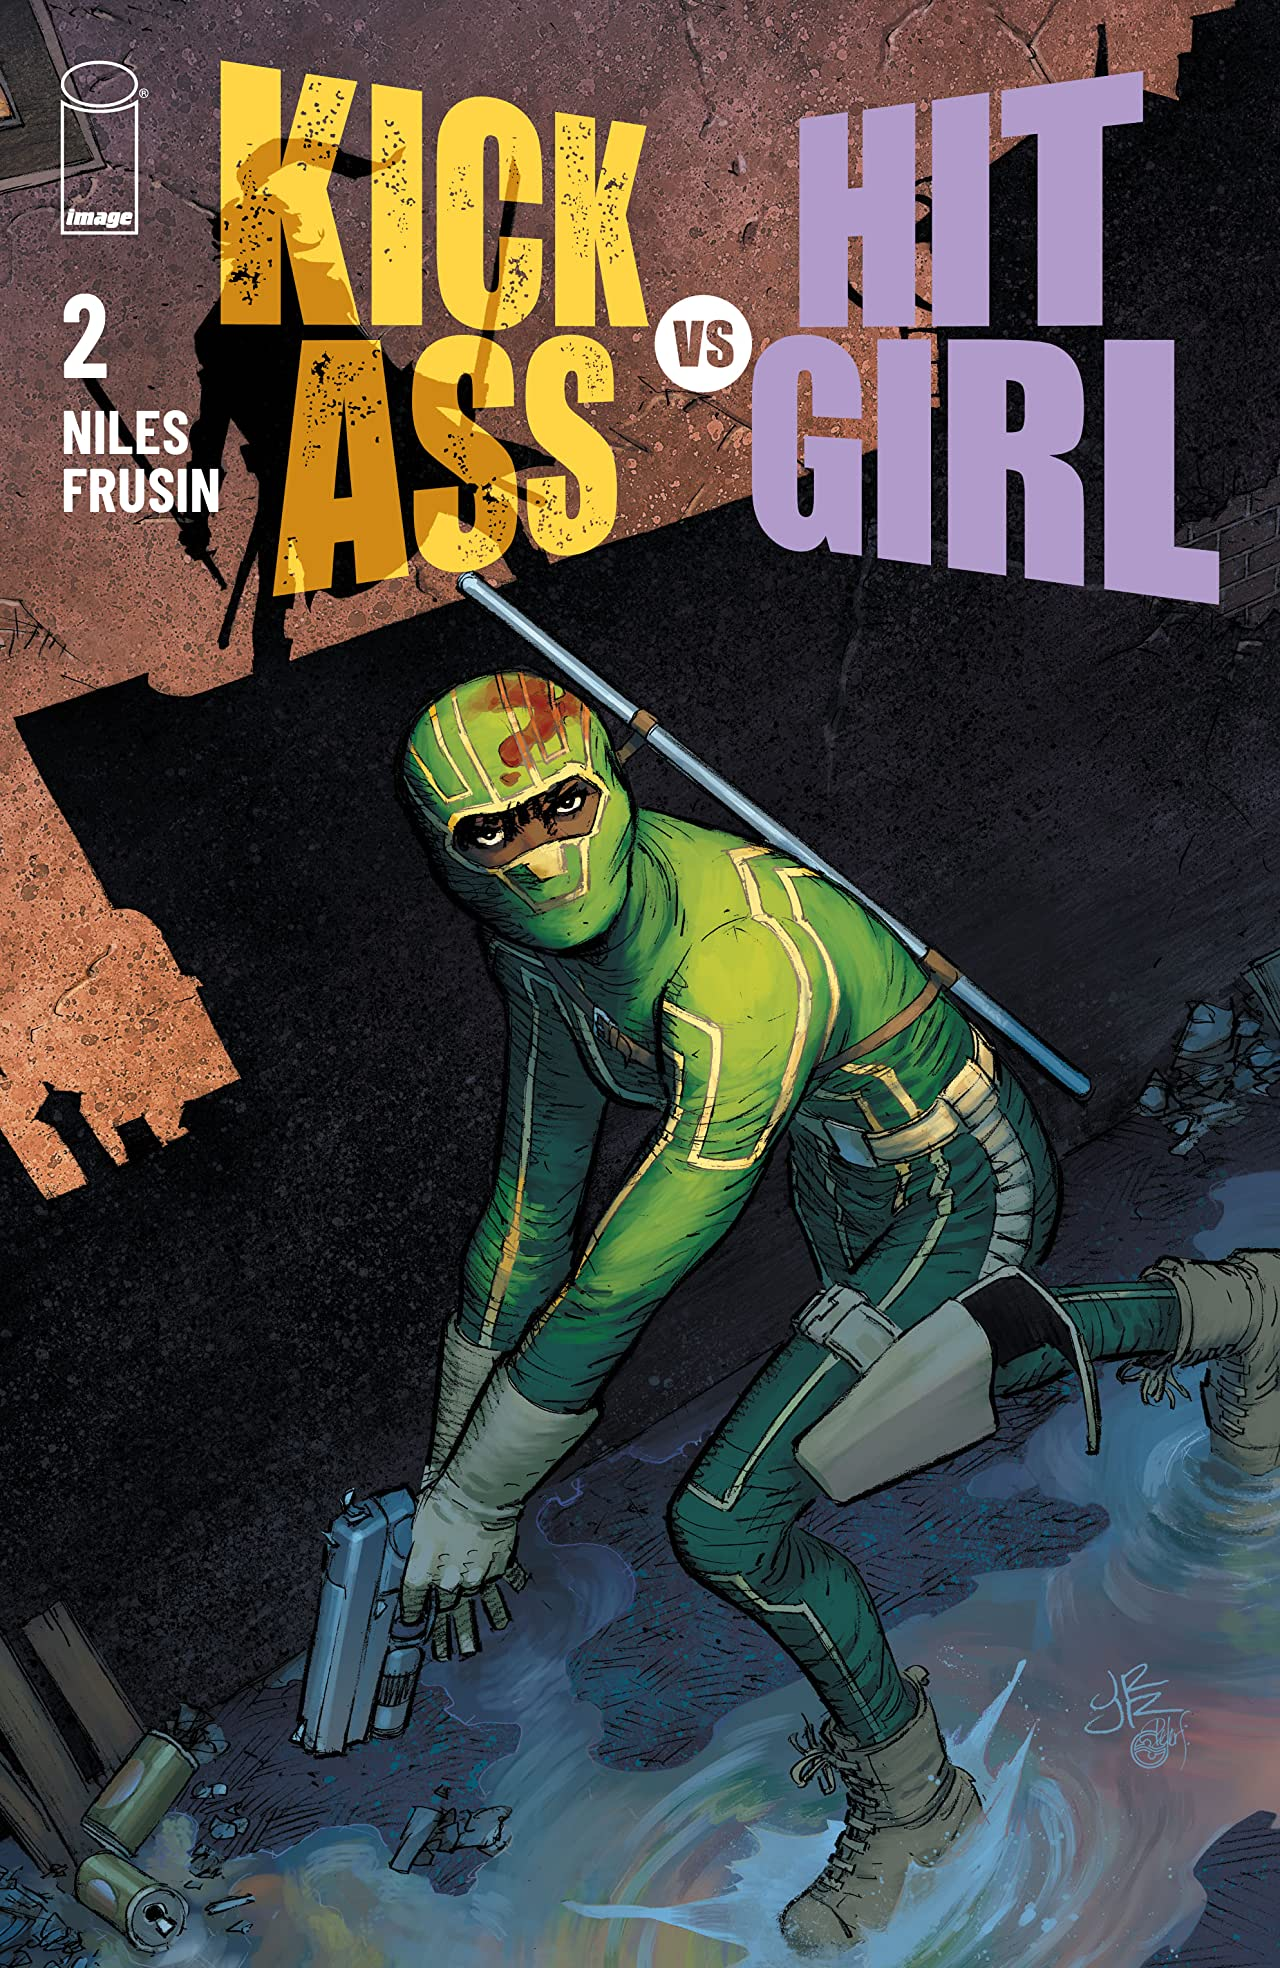 Kick-Ass Vs. Hit-Girl #2